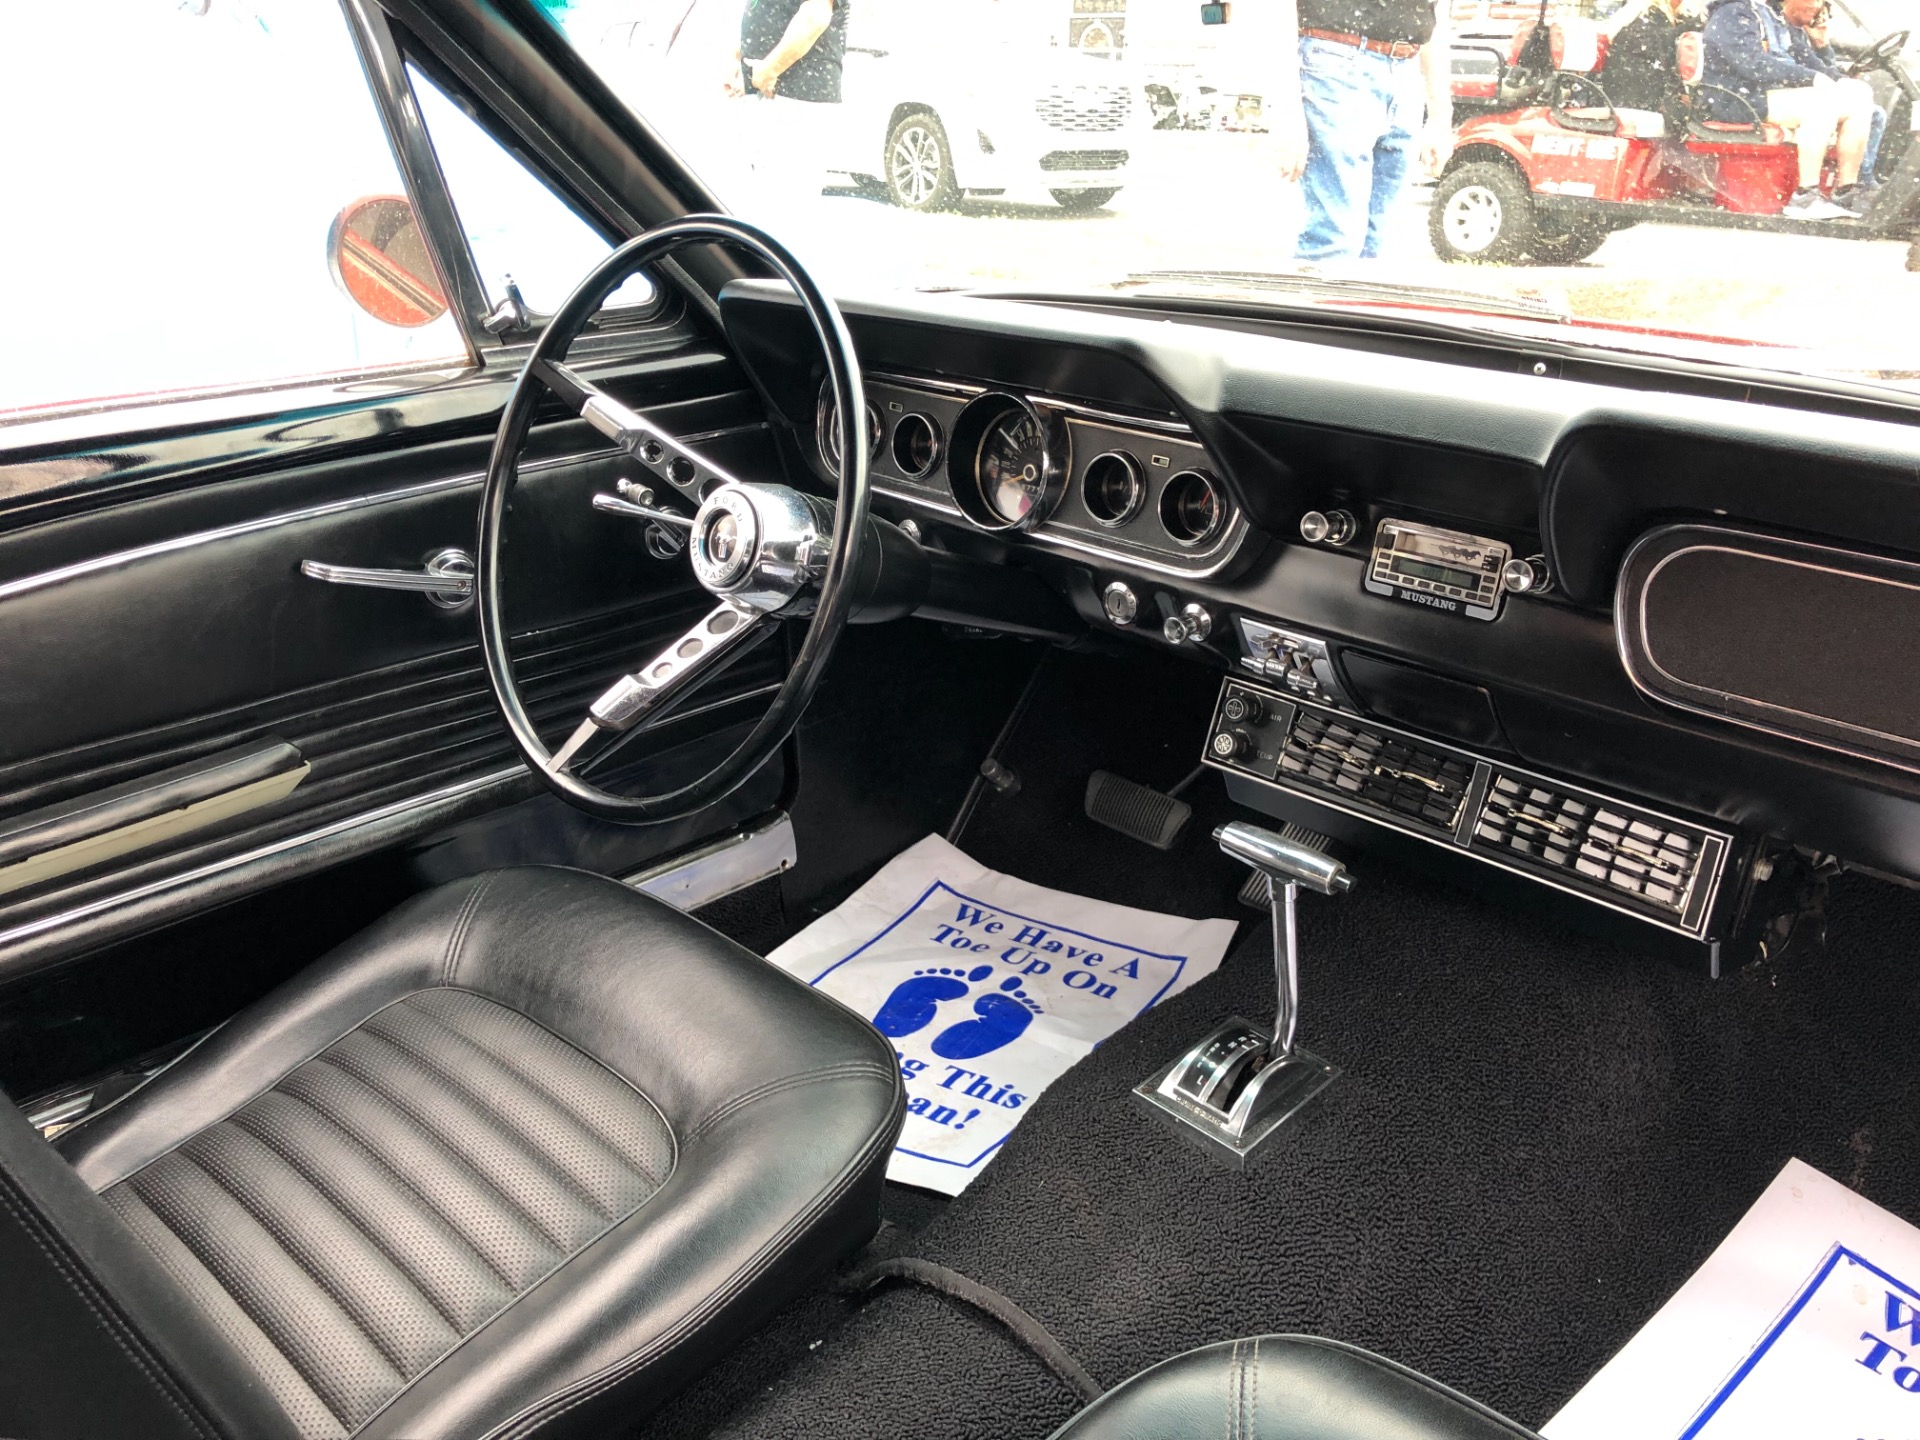 Used 1966 Ford Mustang -SOUTHERN CLASSIC CAR-AIR CONDITIONING-C CODE- | Mundelein, IL